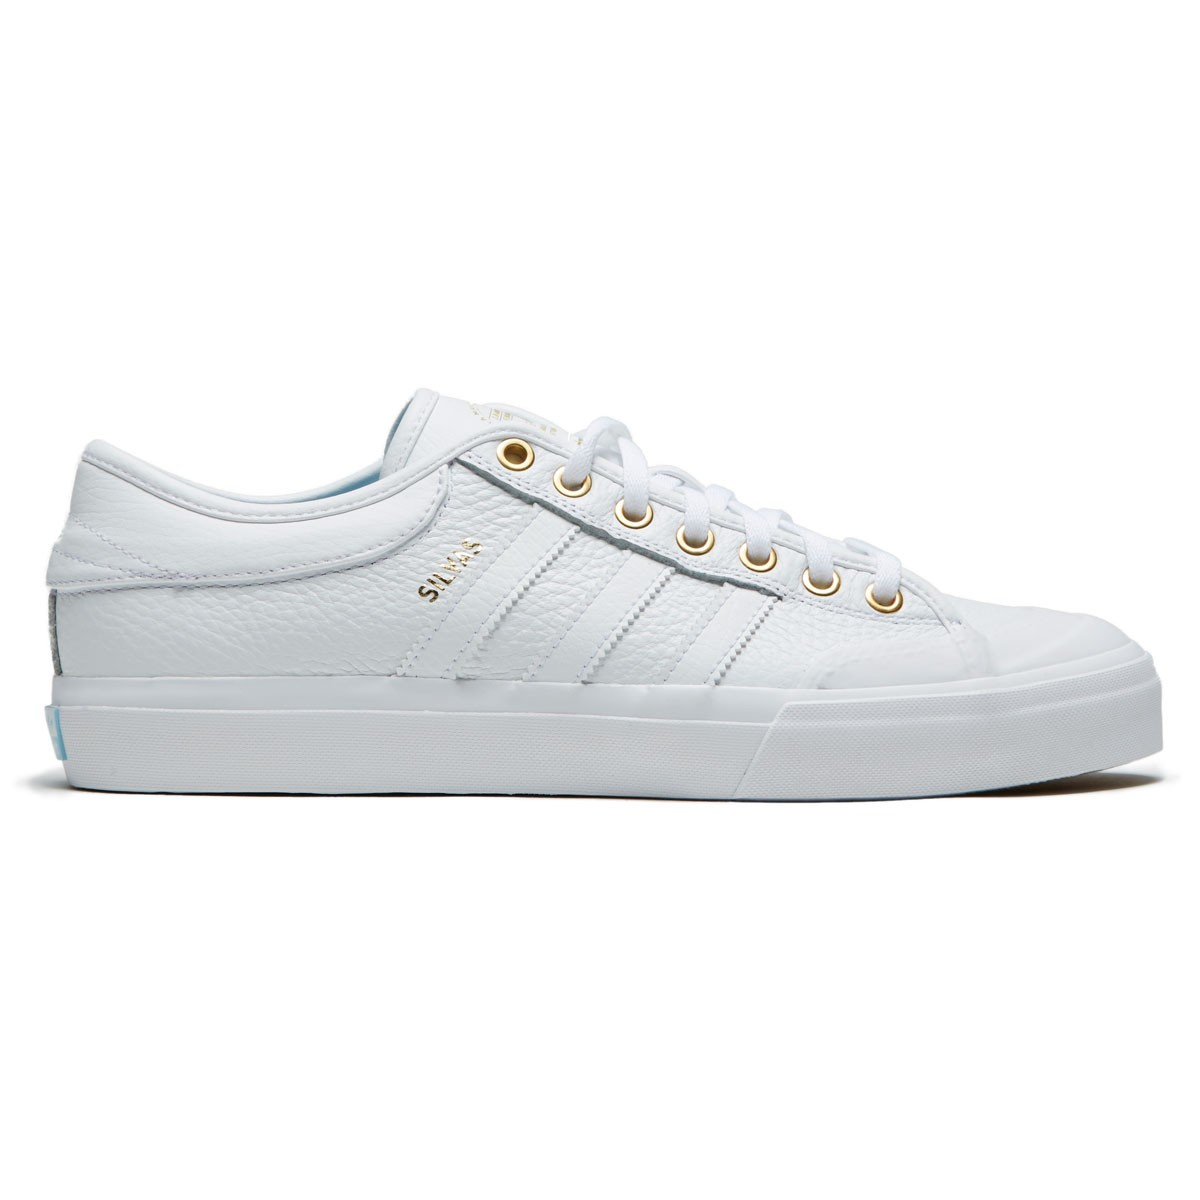 Black White Gold Metallic Cheapest Adidas Matchcourt